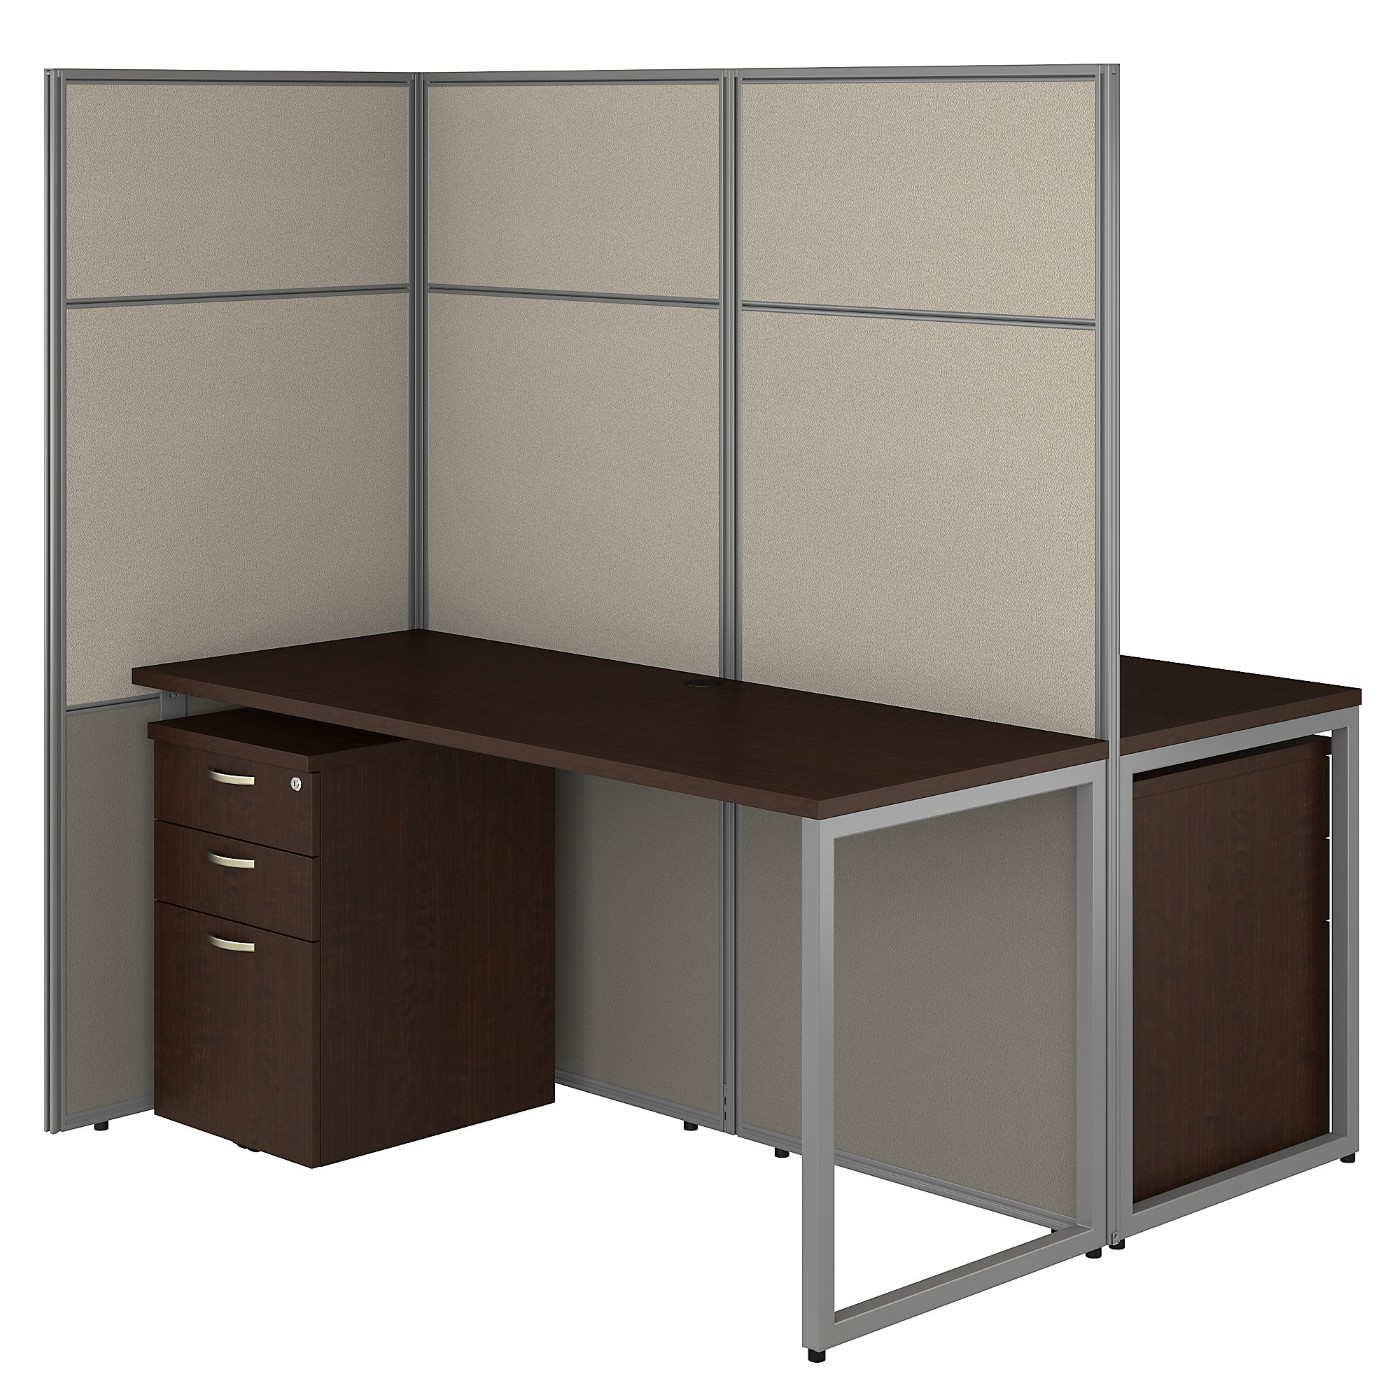 BUSH BUSINESS FURNITURE EASY OFFICE 60W 2 PERSON CUBICLE DESK WITH FILE CABINETS AND 66H PANELS. FREE SHIPPING 30H x 72L x 72W.  SALE DEDUCT 10% MORE ENTER '10percent' IN COUPON CODE BOX WHILE CHECKING OUT. ENDS 5-31-20.